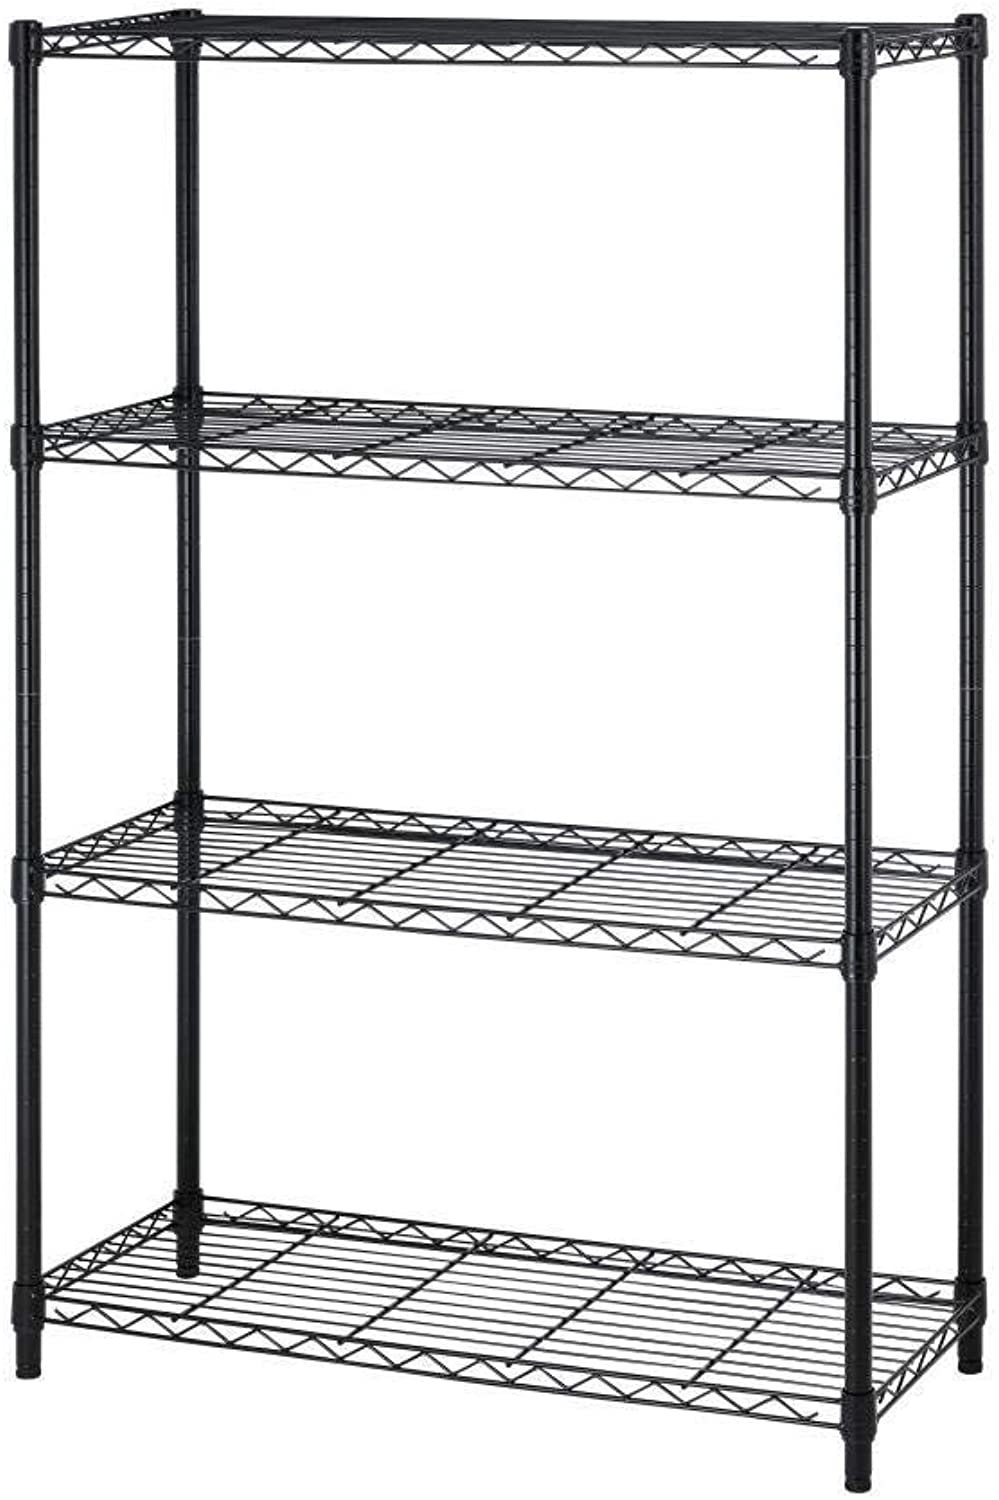 BestOffice Wire Shelving Unit Heavy Duty Metal NSF Organizer Height Adjustable Utility Rolling Steel Commercial Grade Layer Rack for Kitchen Bathroom Office, Black-14 x 36 x 54 (4-Tier)